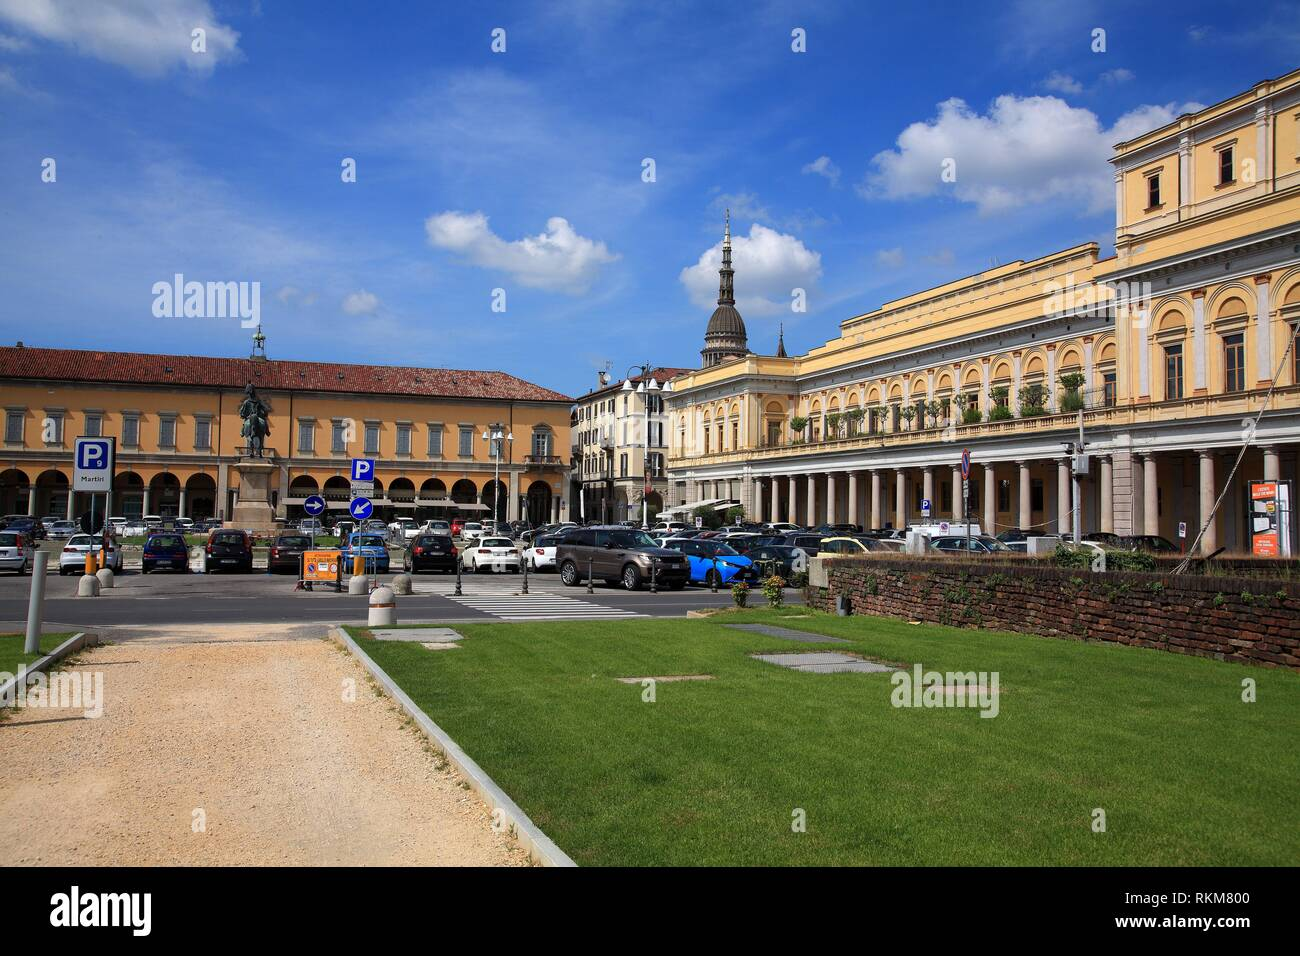 Piazza Martiri della Libertá with the Coccia theater. Novara. Italy. - Stock Image